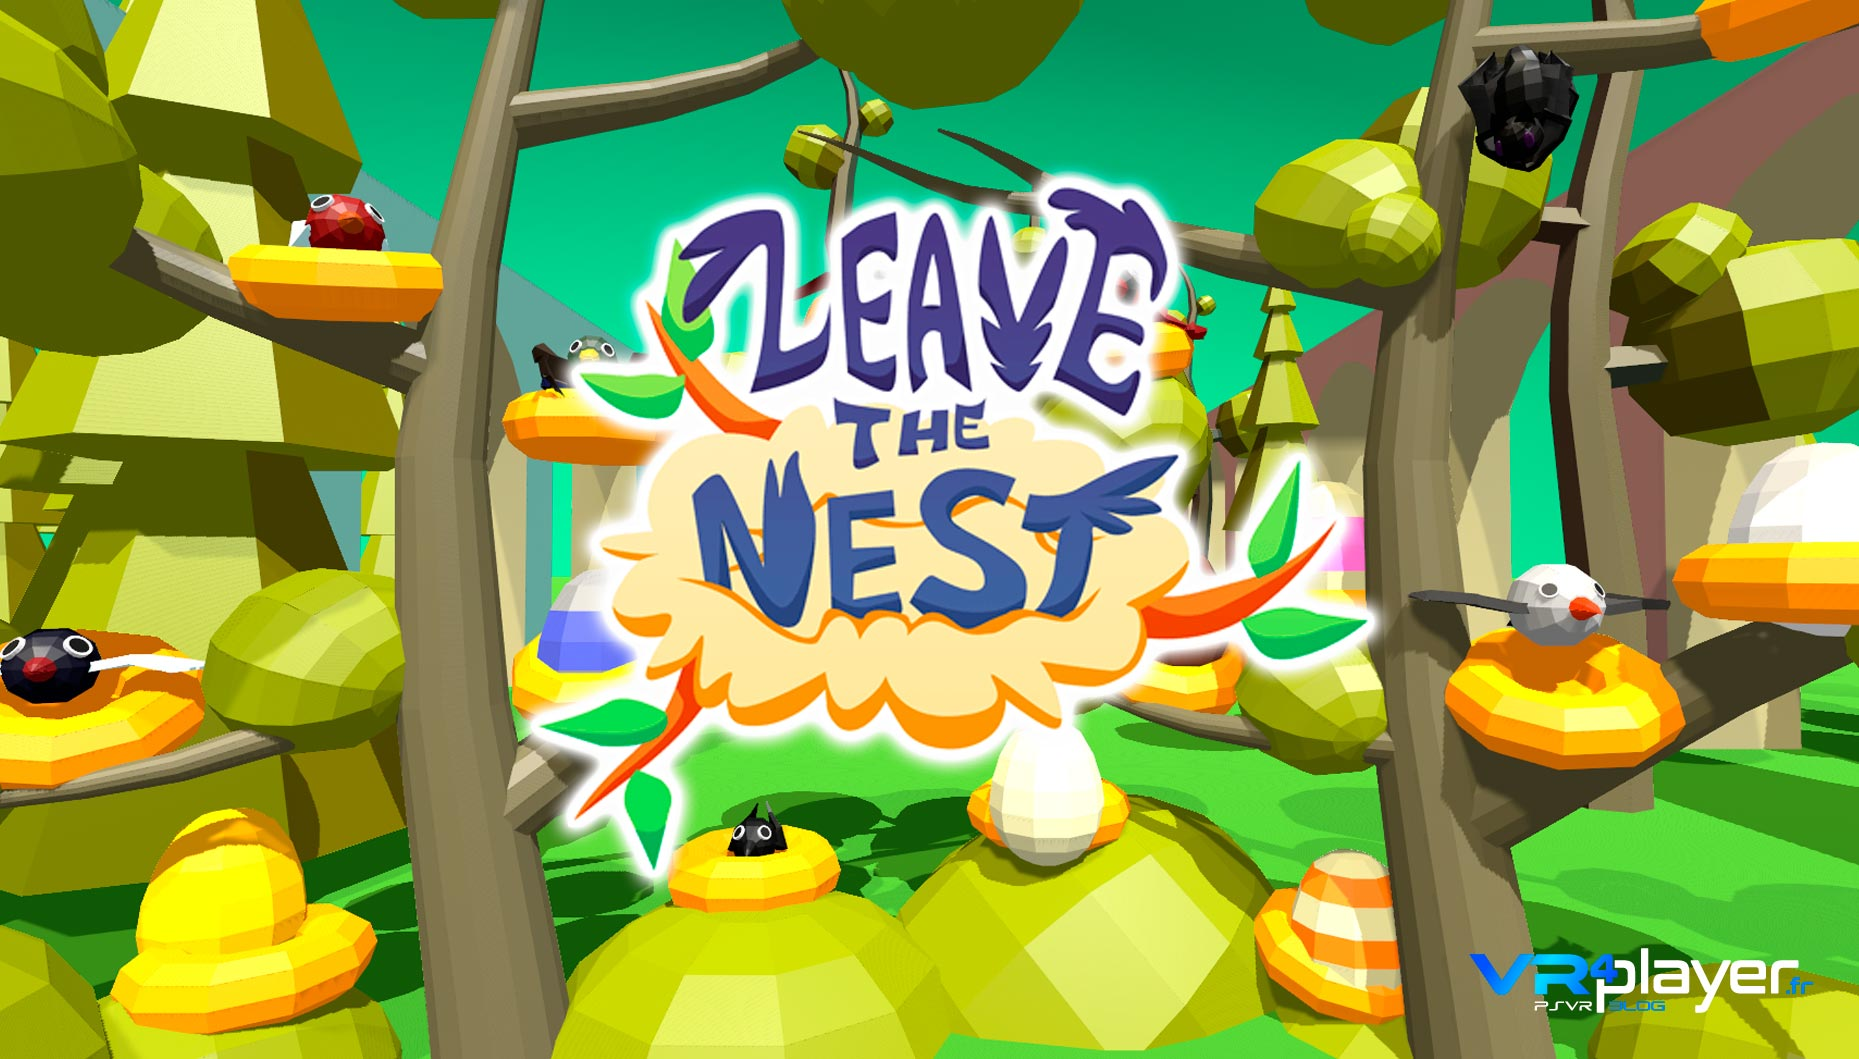 Leave the Nest sur PlayStation VR VR4player